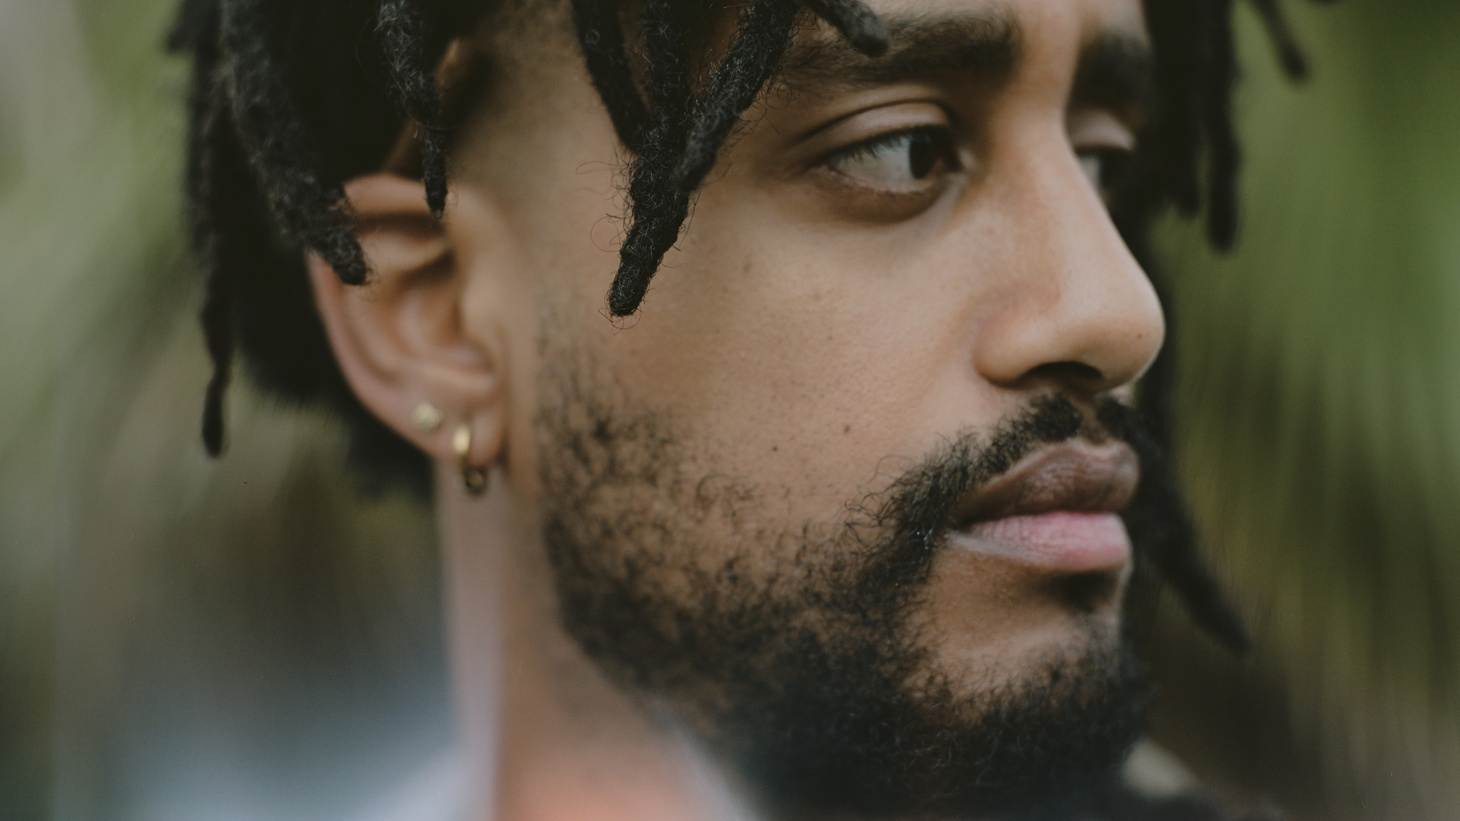 """Montreal's Chiiild uses his music to pen songs that ponder our humanity and shared experiences. """"Eventually"""" lures us in with a come-hither beat much like the lover he's trying to coax back."""